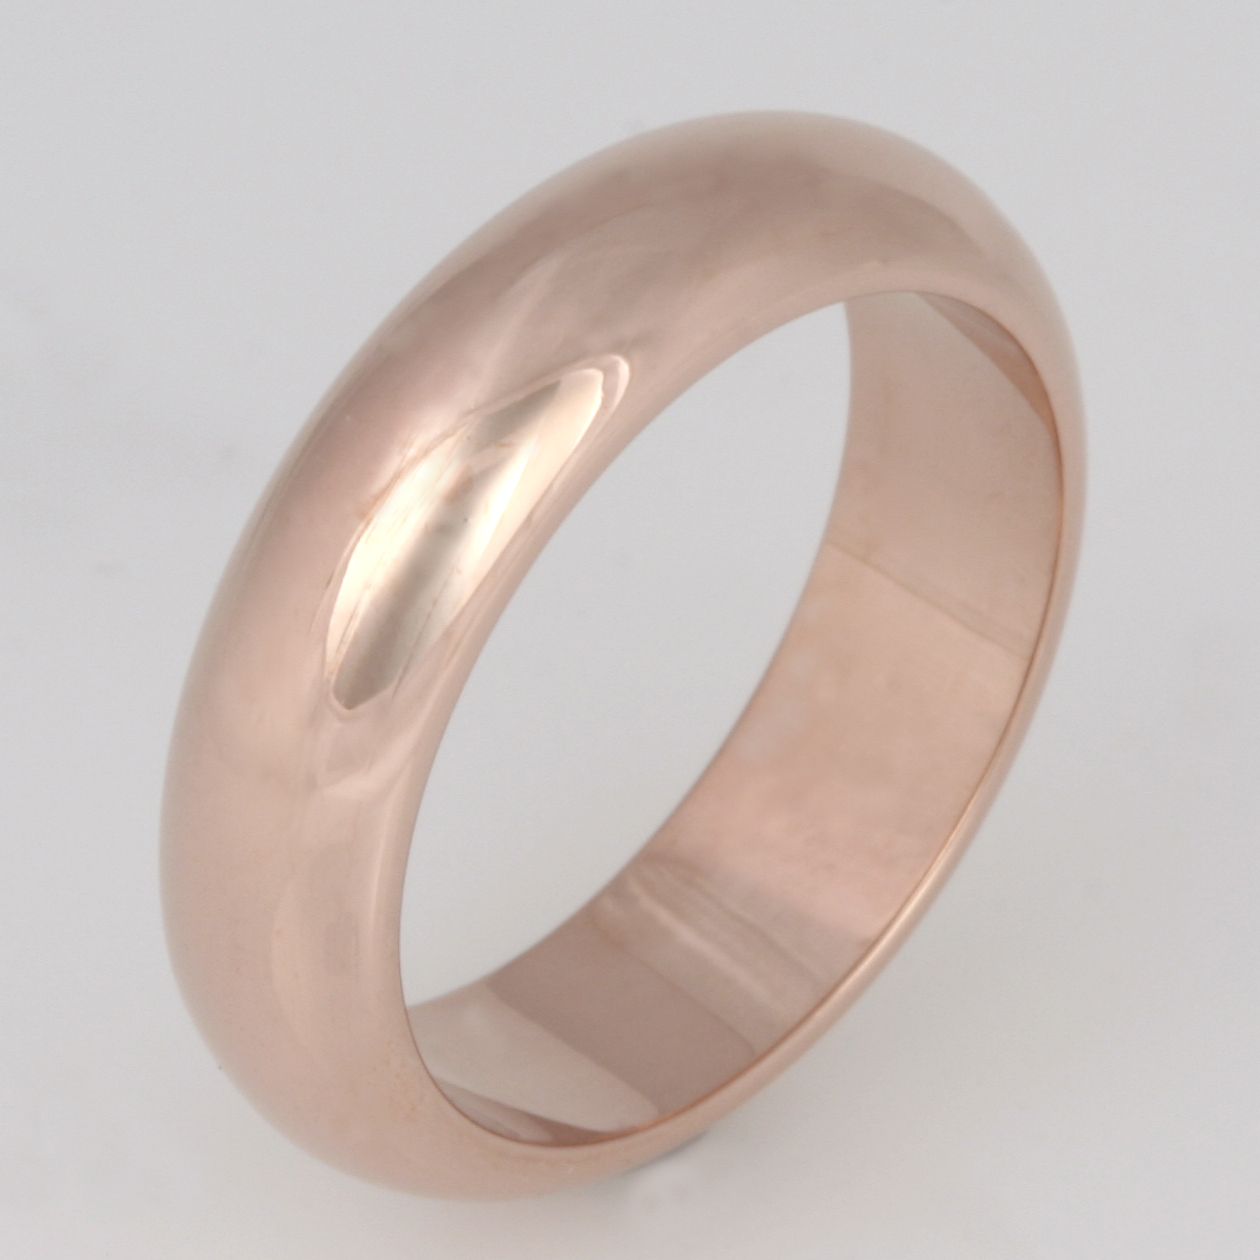 Handmade ladies 18ct rose gold wedding ring